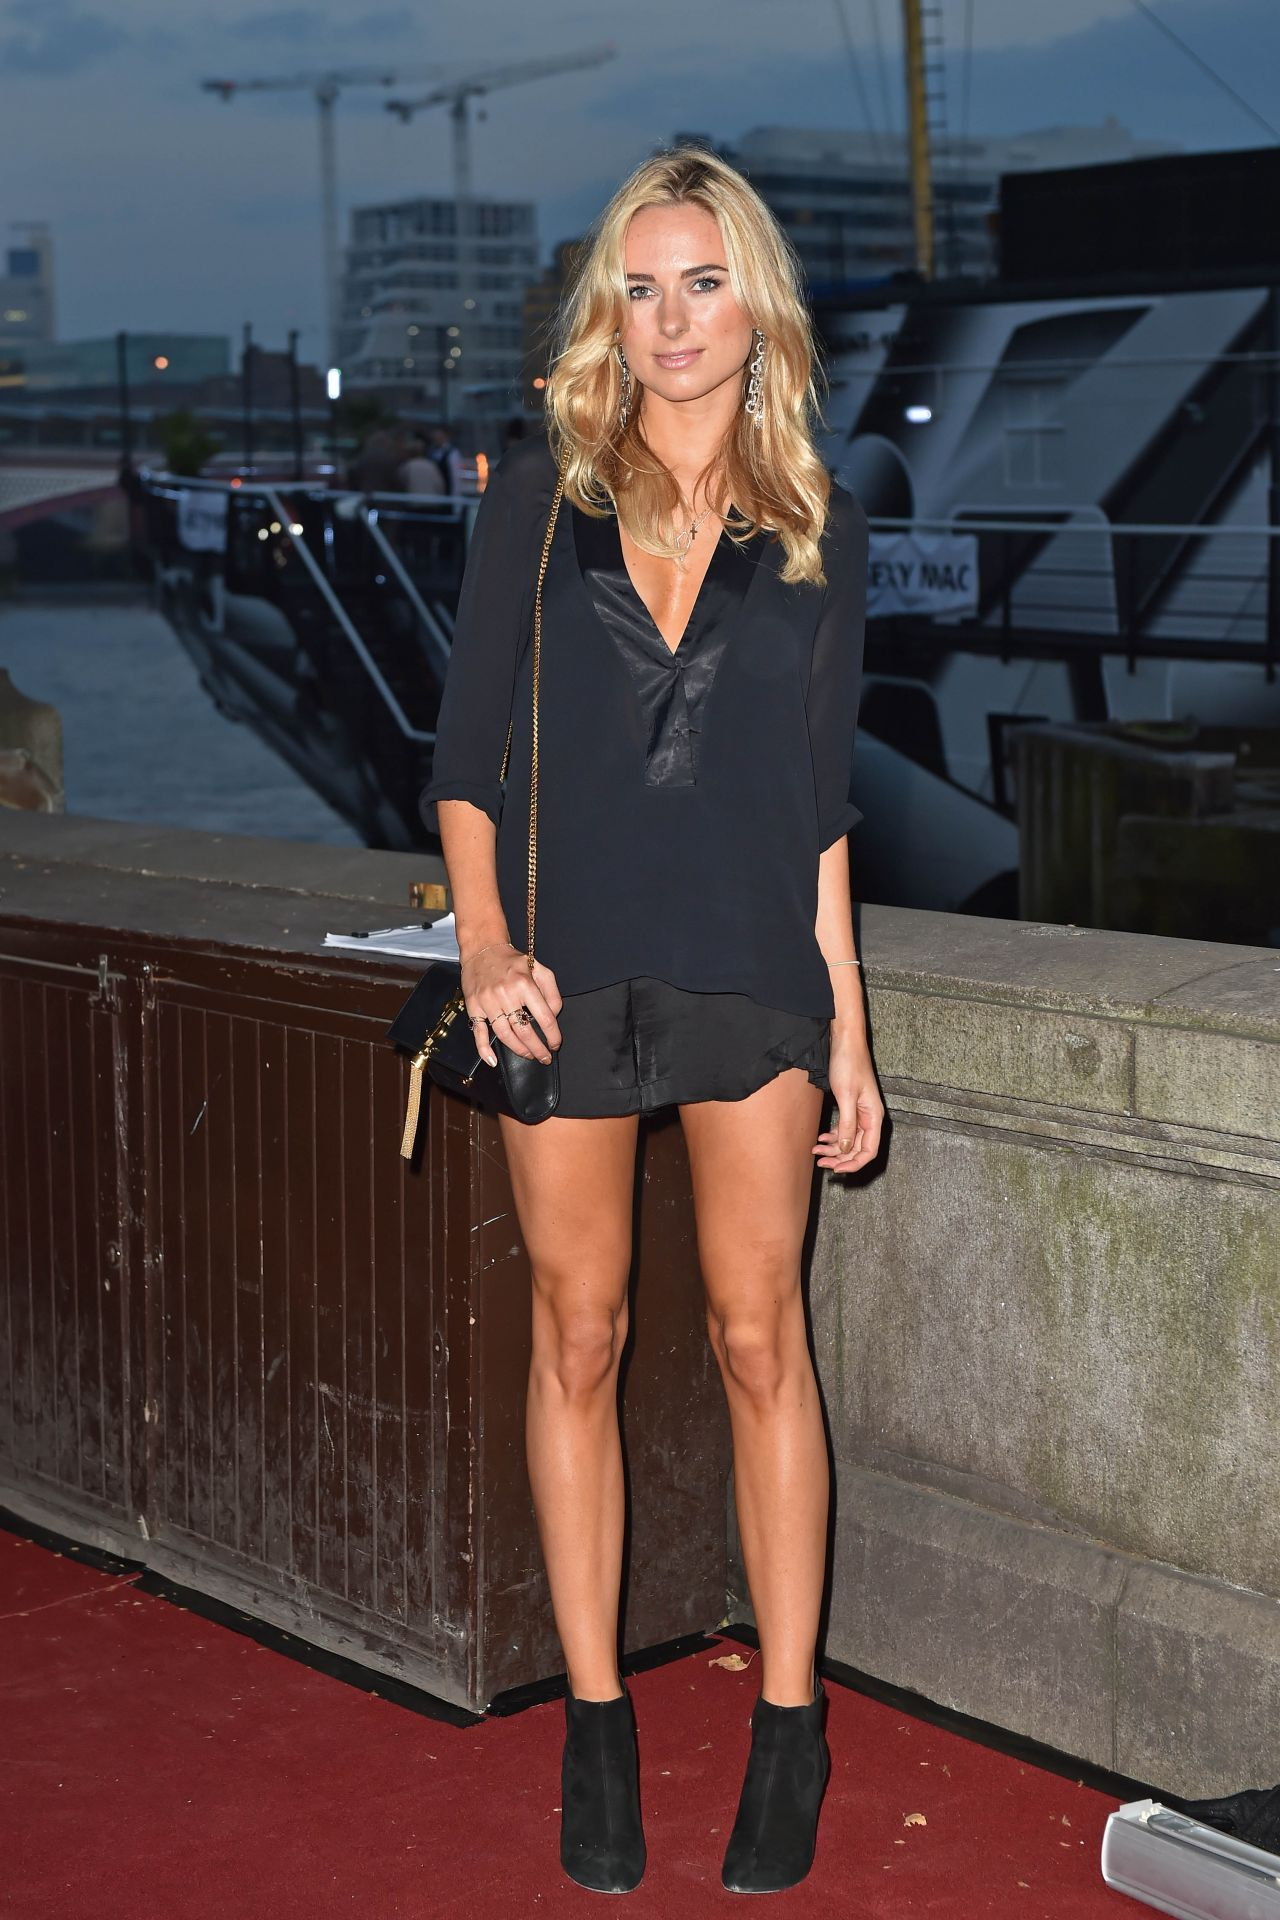 Kimberley Garner Shows Off Her Legs At Sexy Mac Launch -4268